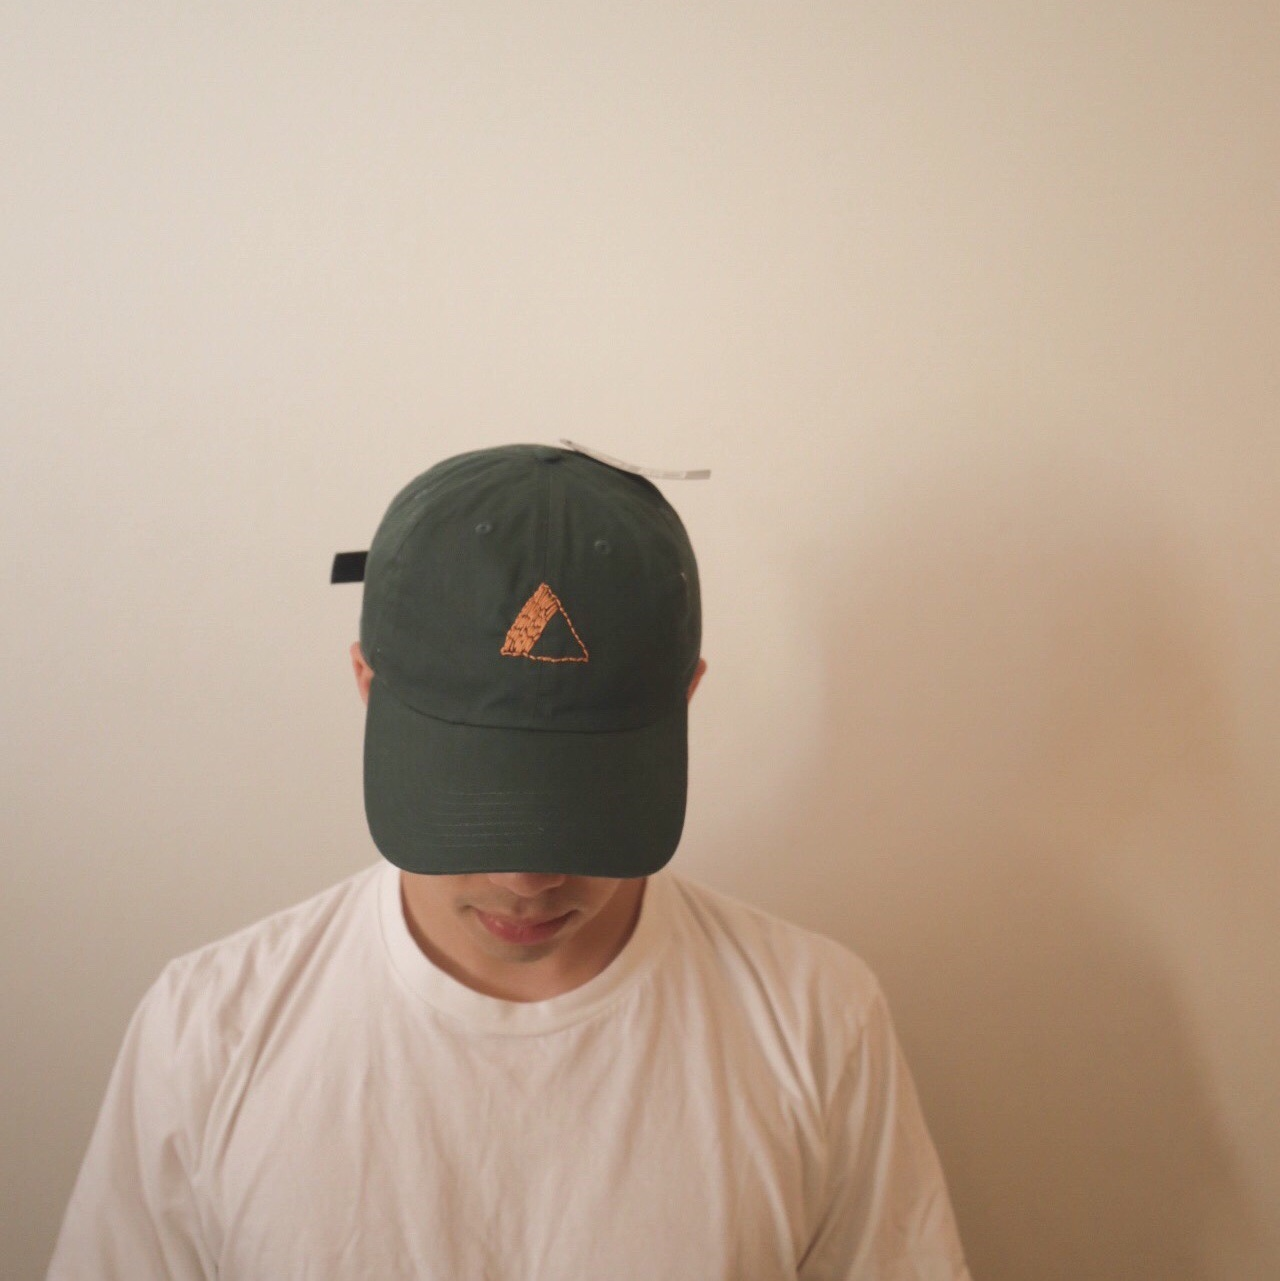 New, custom hand-embroidered Newhattan hat  One size